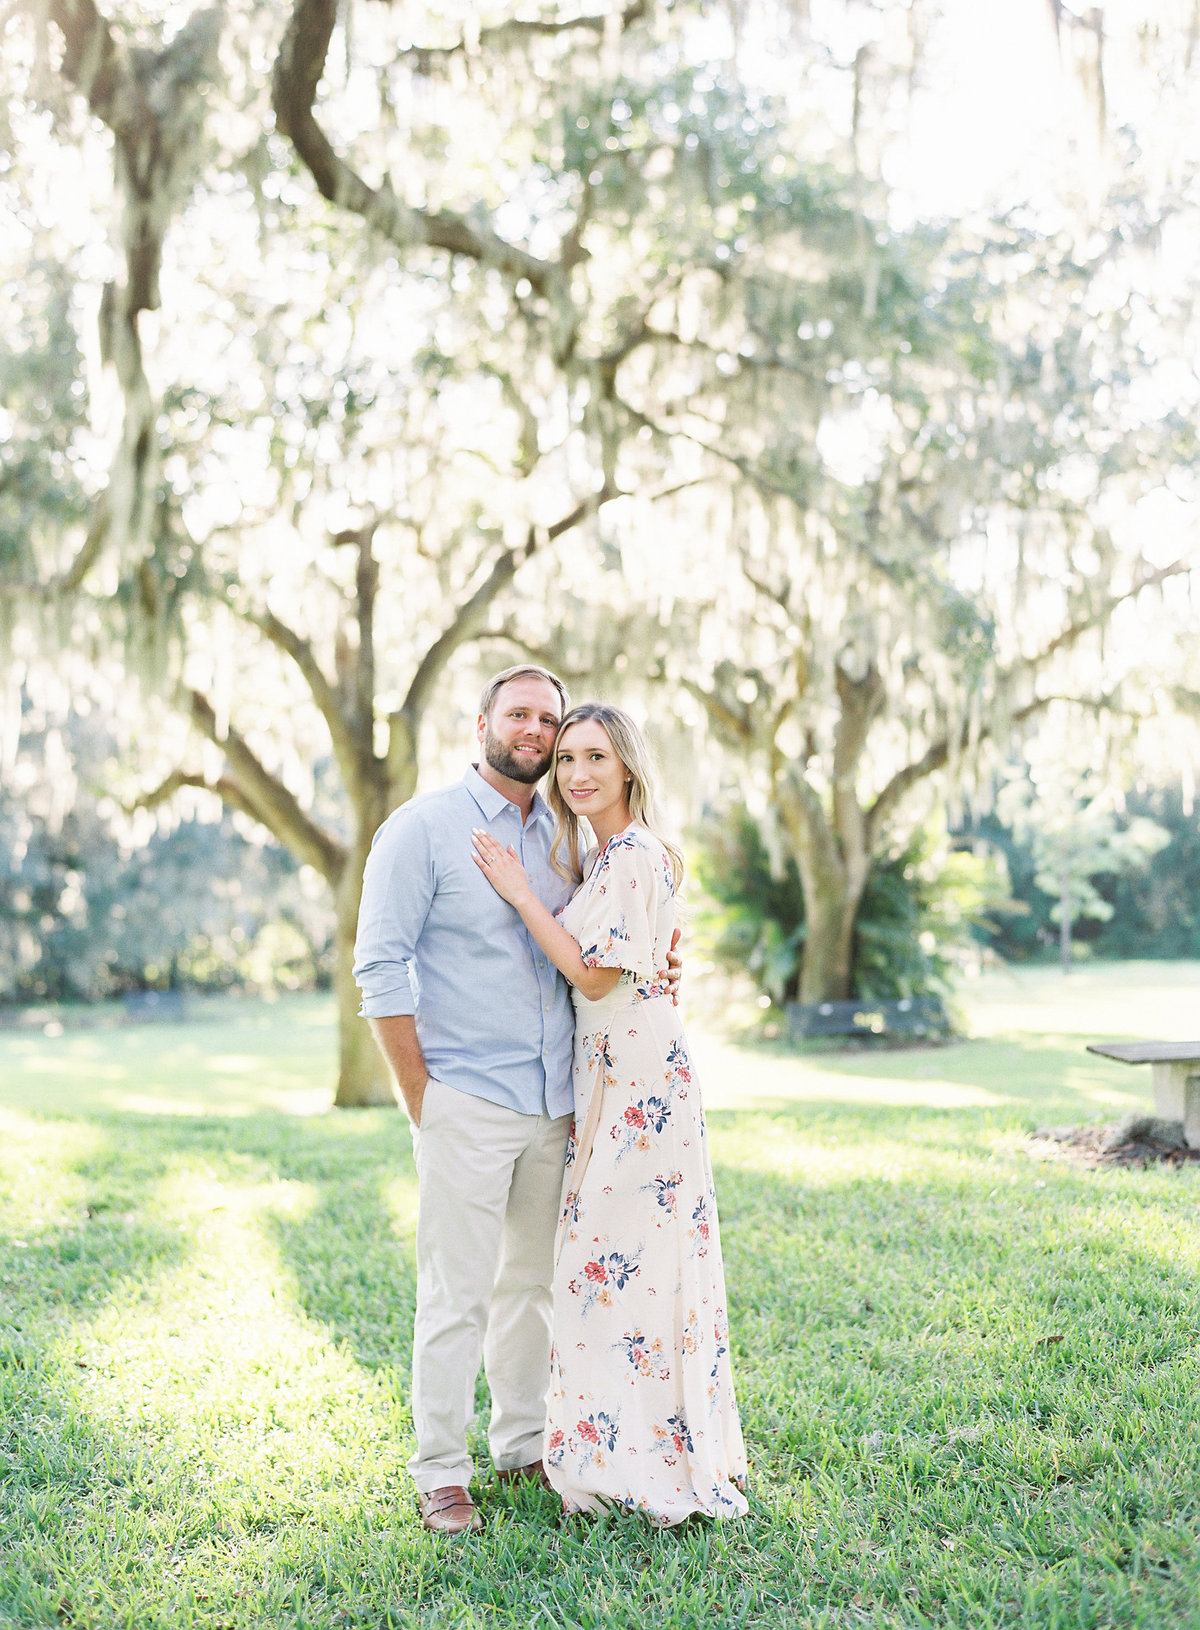 Bok_Tower_Garden_Film_Fine_Art_Engagement_Session-15